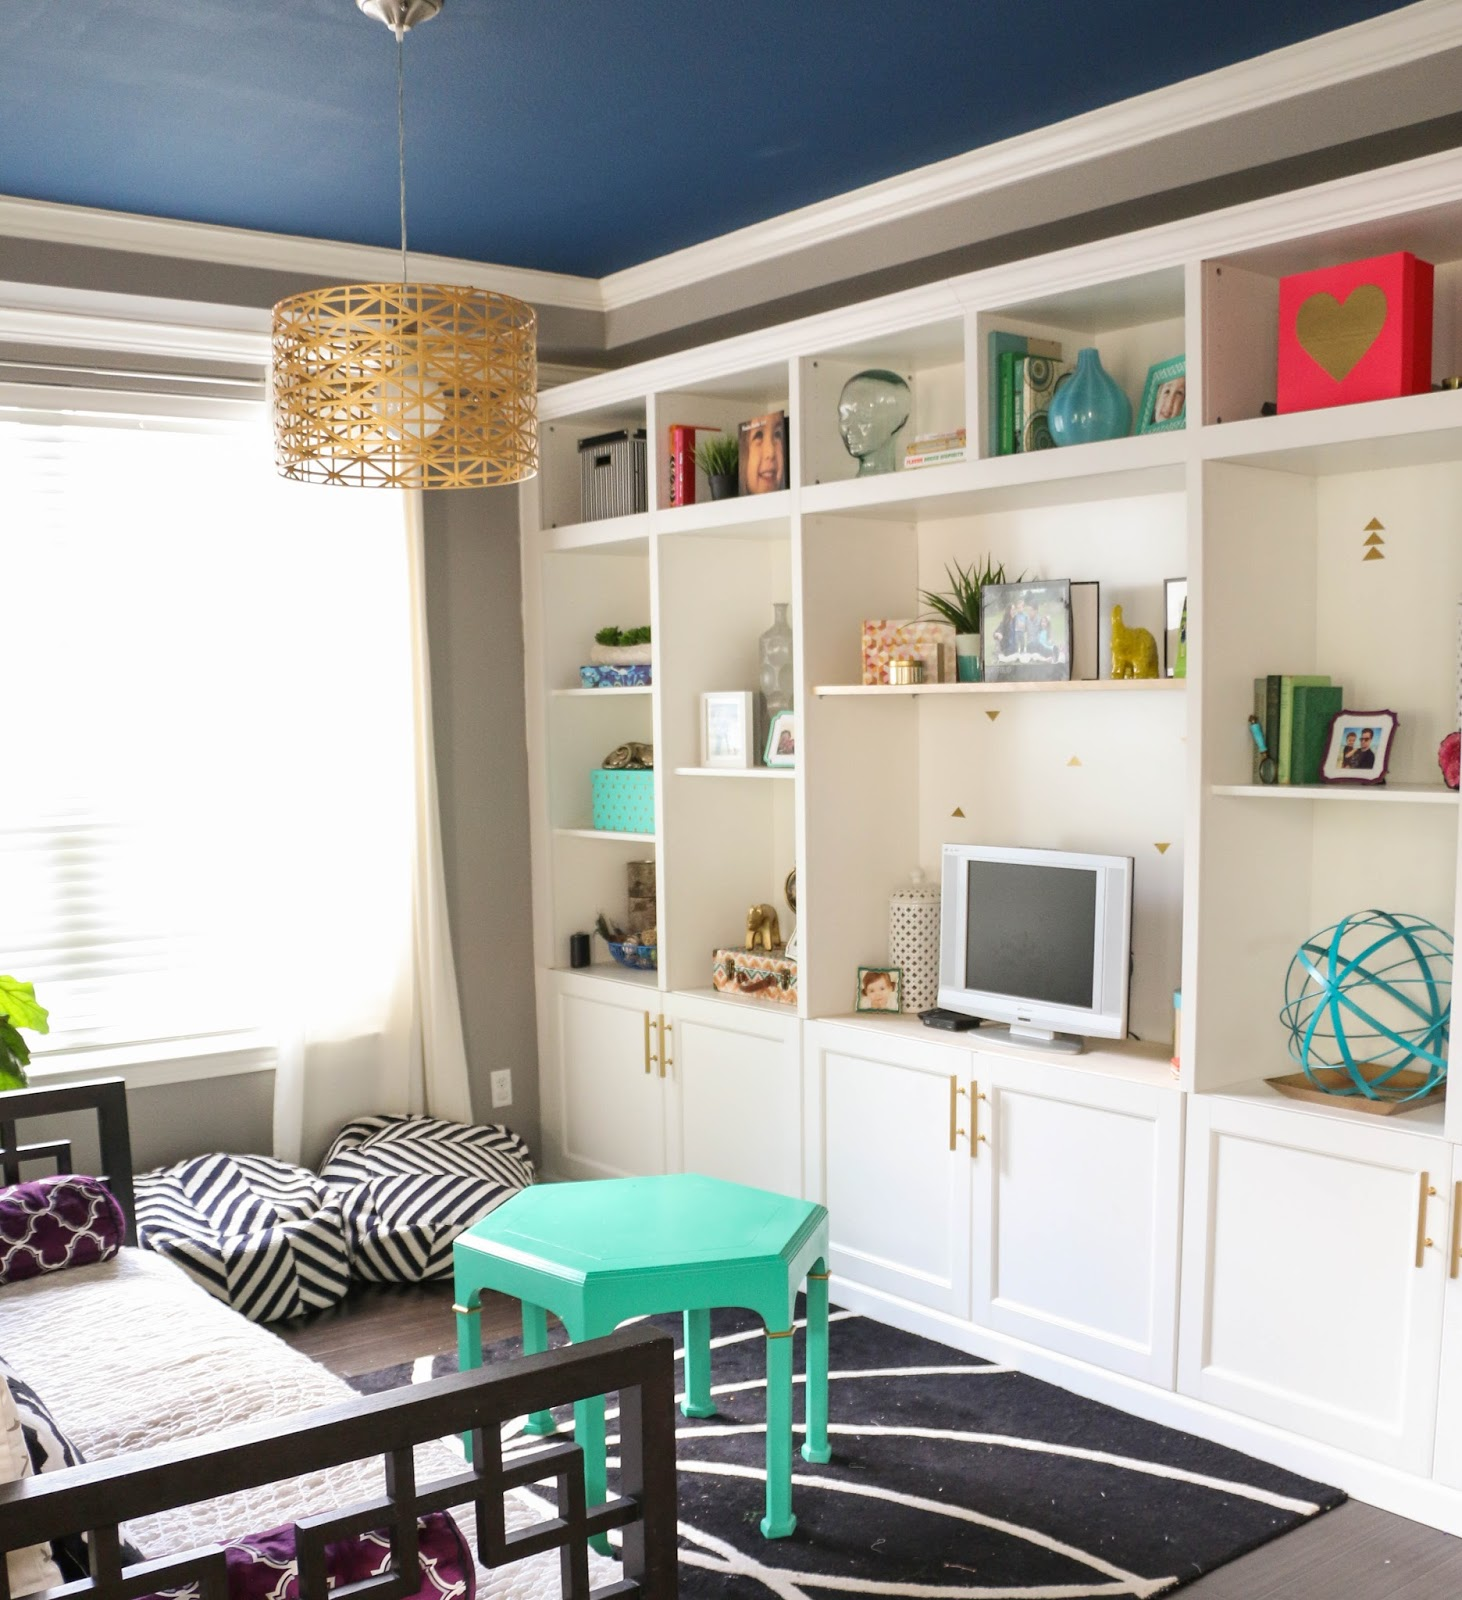 A Kailo Chic Life: Home Tour Tuesday - The Formal Living Room